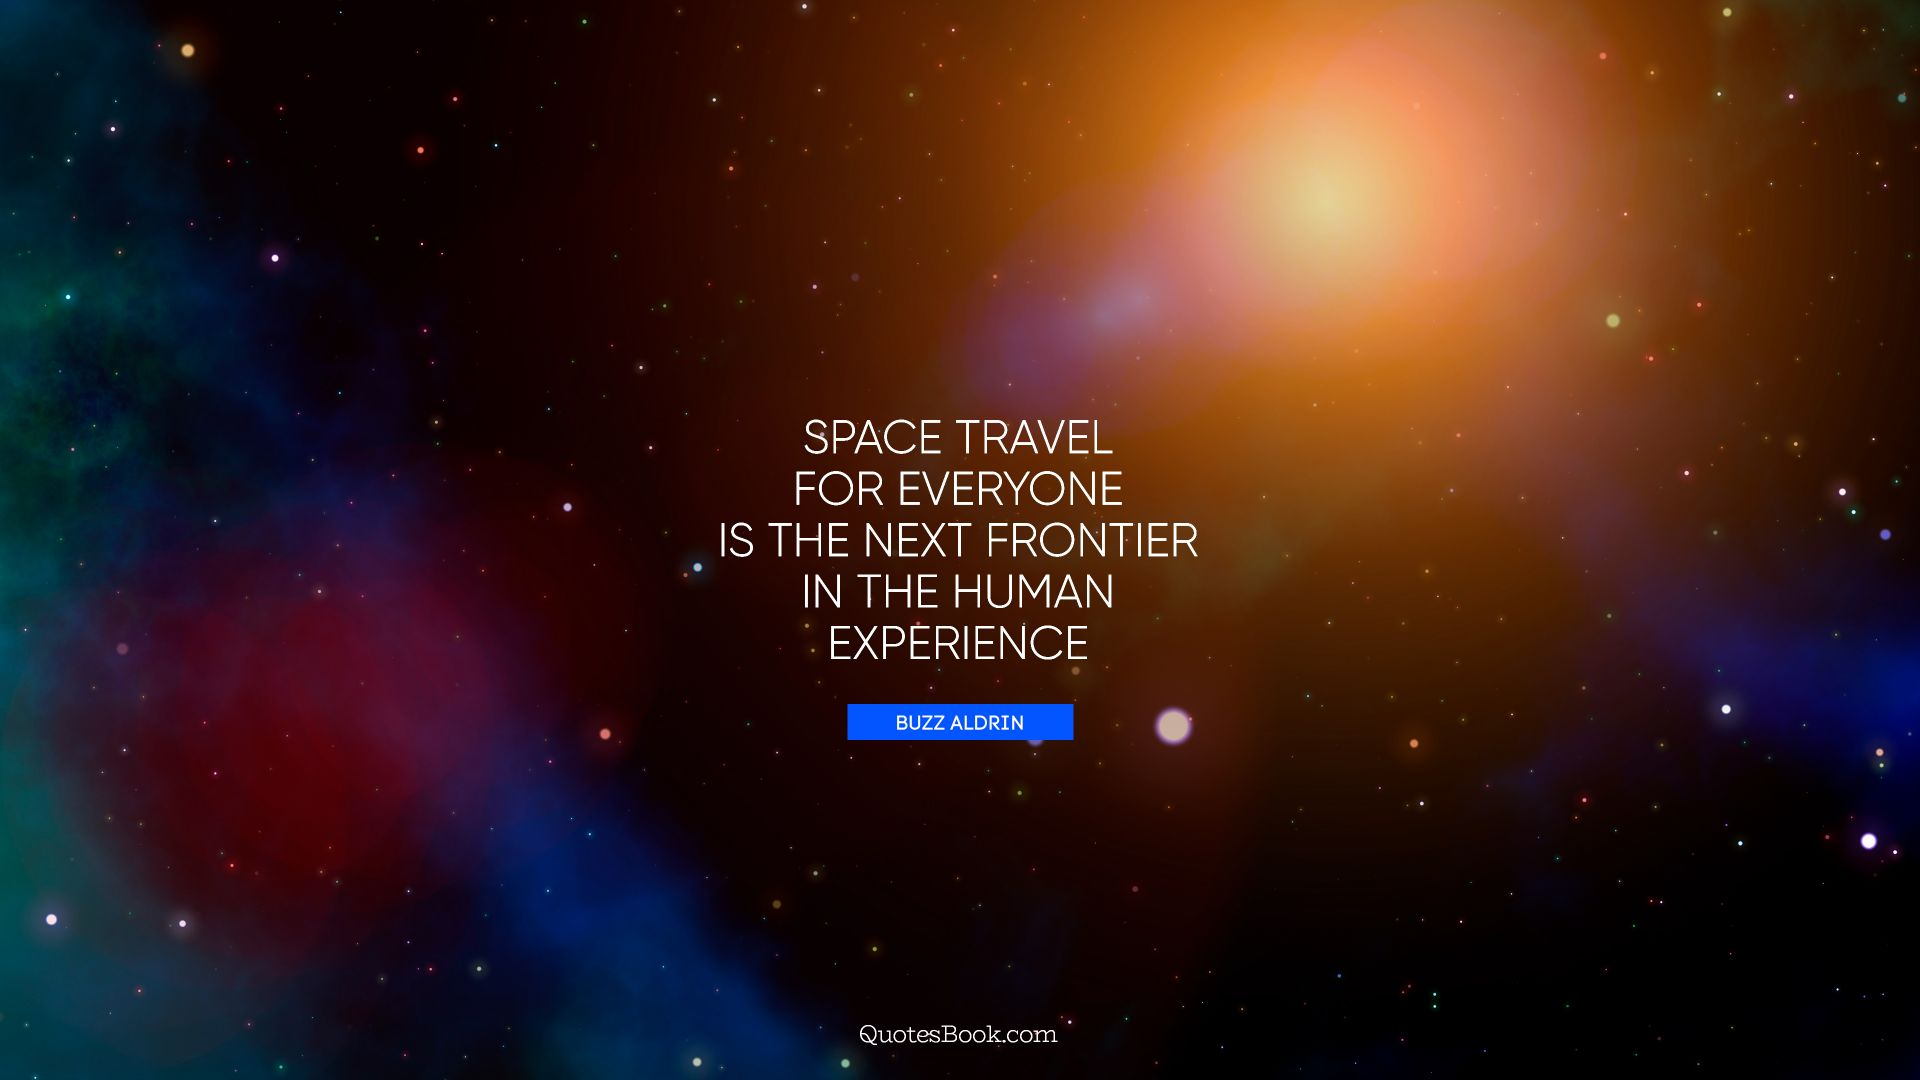 Space travel for everyone is the next frontier in the human experience. - Quote by Buzz Aldrin